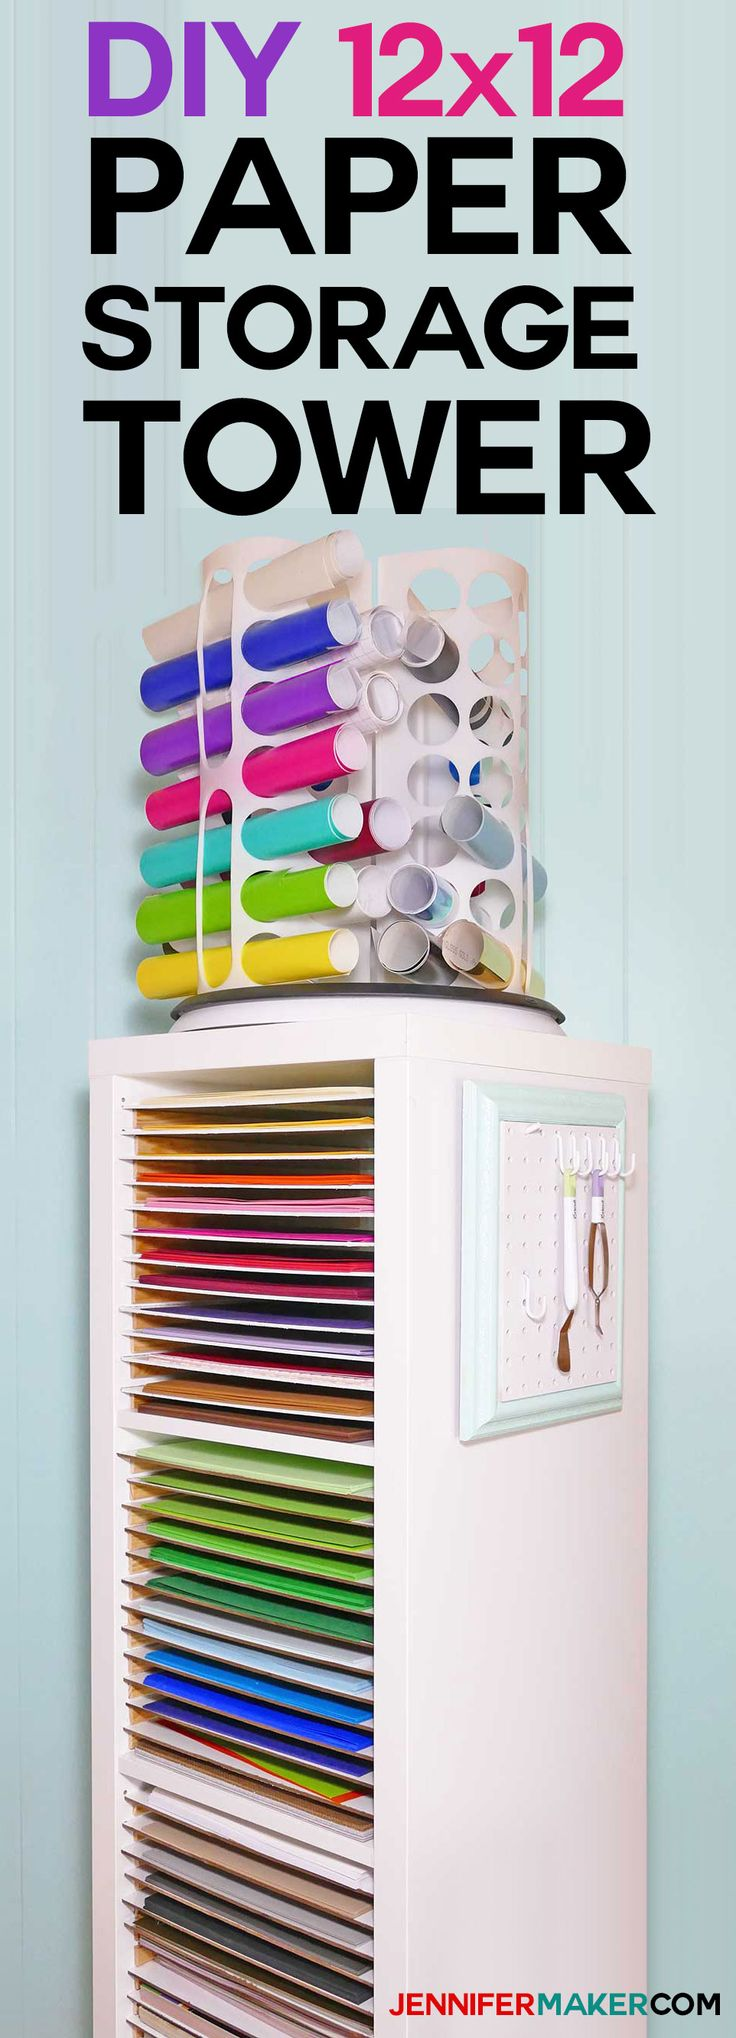 25 unique paper storage ideas on pinterest desk for Diy organization crafts